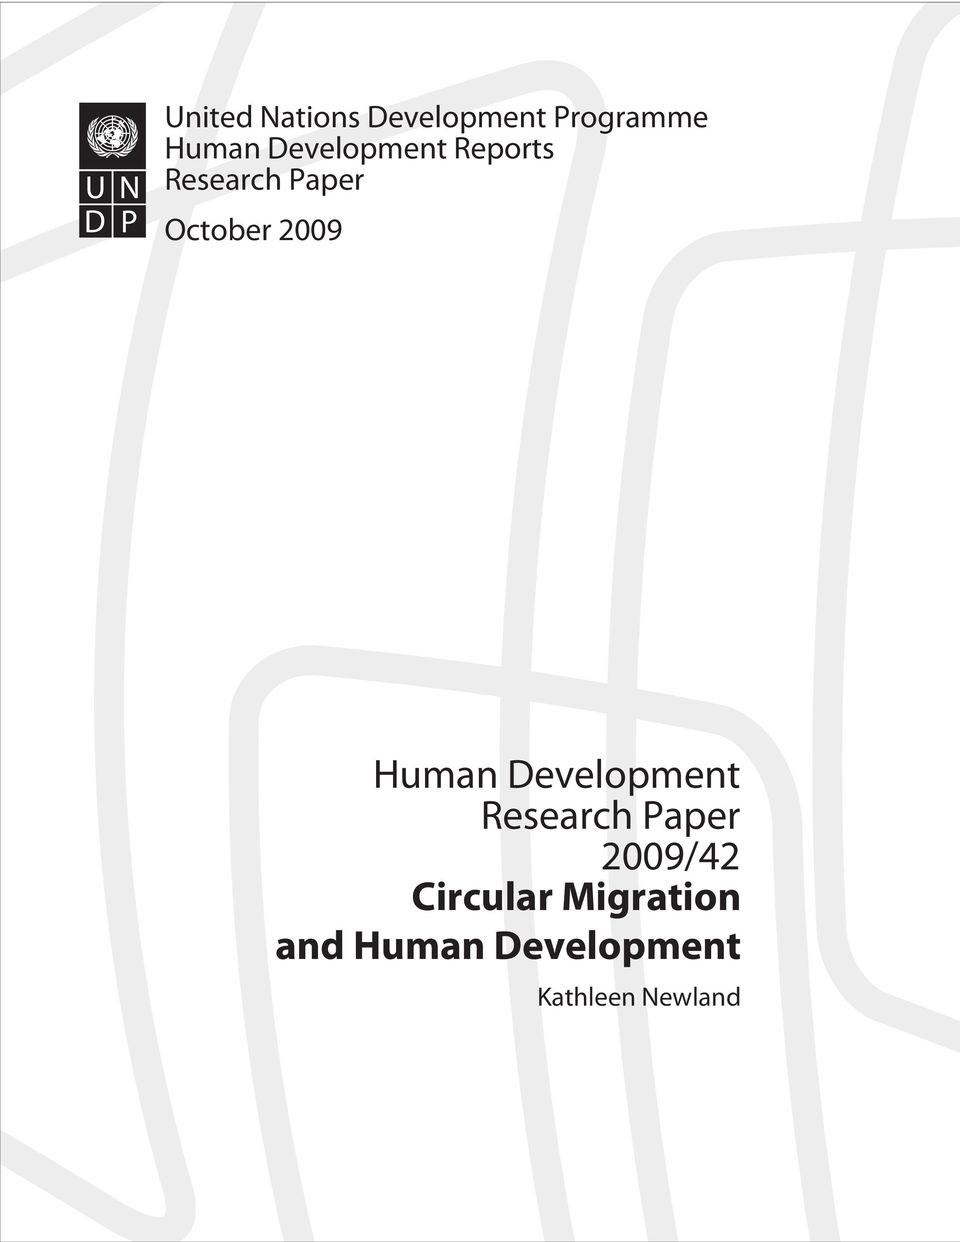 Human Development Research Paper 2009/42